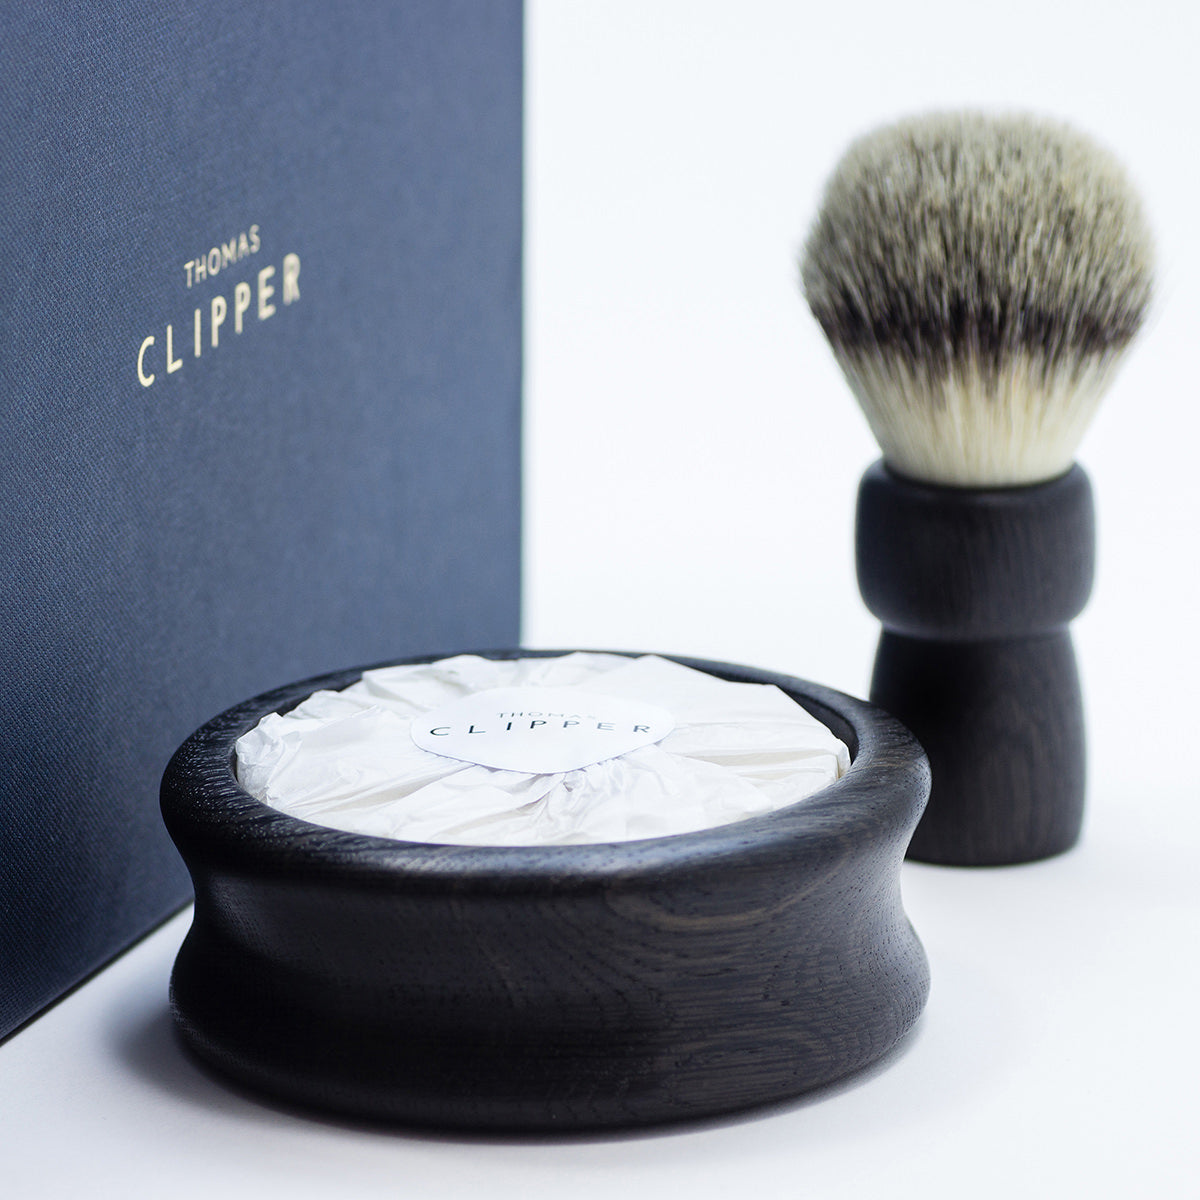 Thomas-Clipper-Shaving-Kit-Neolithic